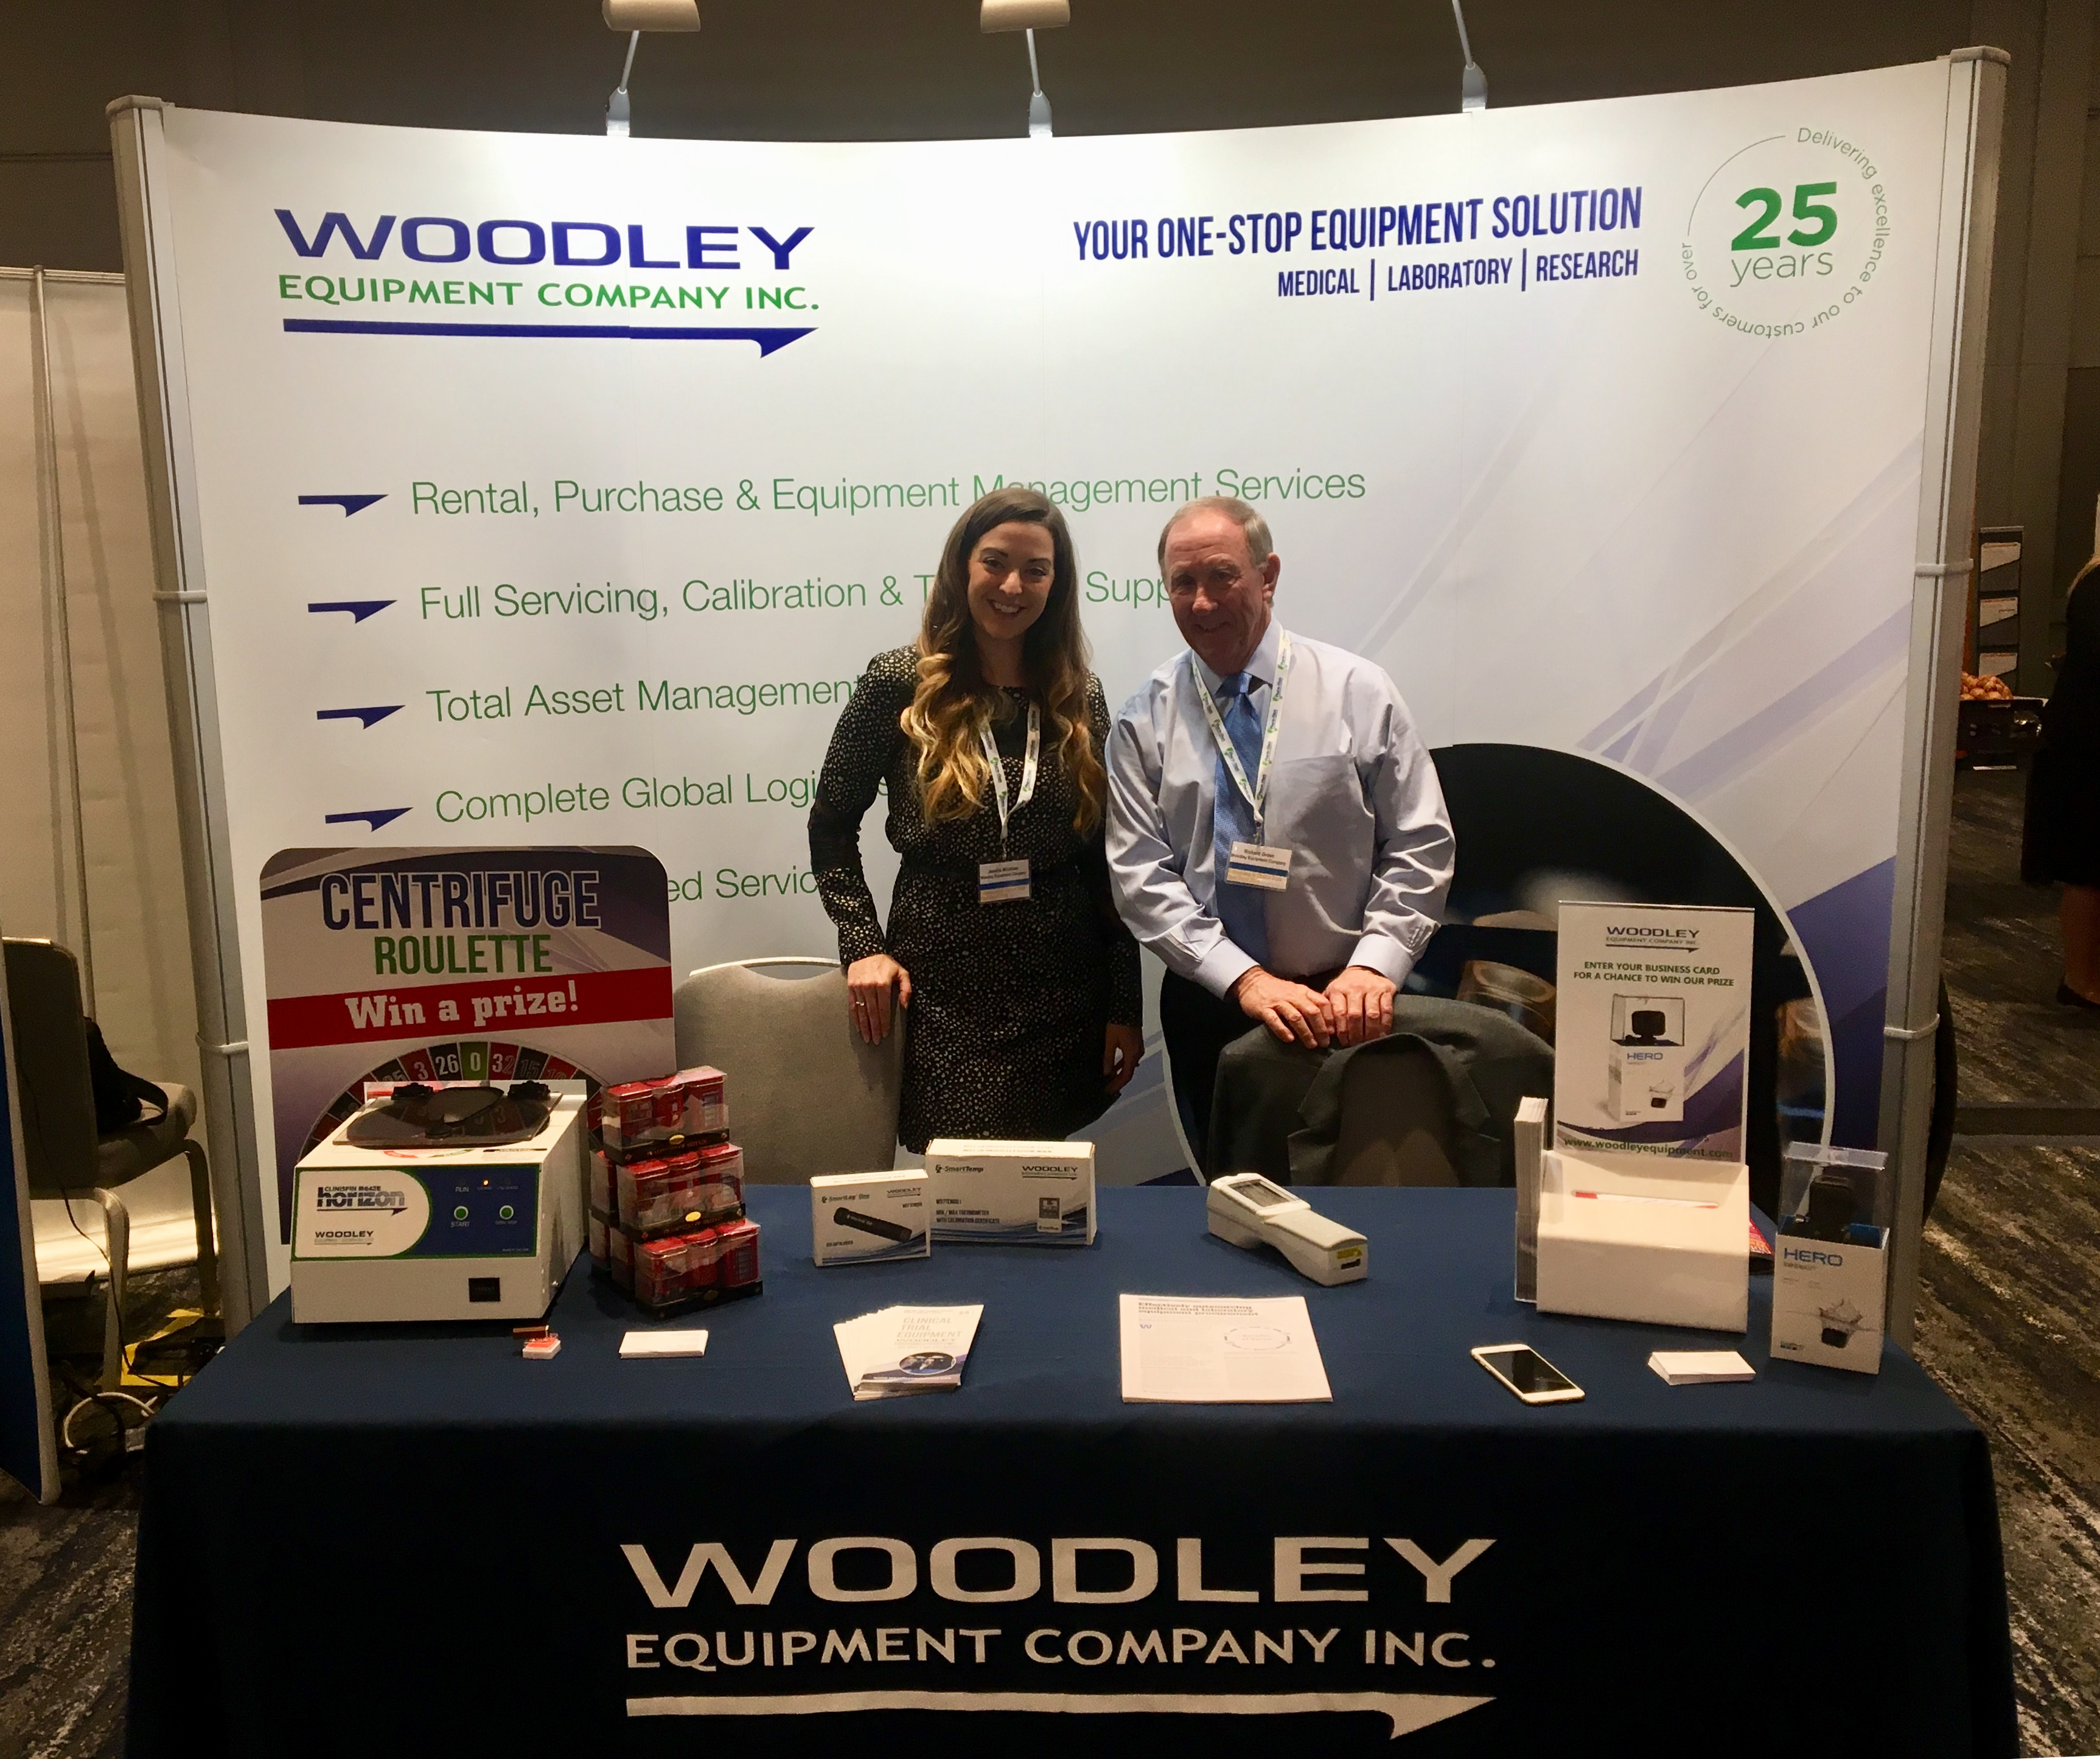 Woodley Equipment Company Inc. Exhibiting at Outsourcing in Clinical Trials West Coast 2018